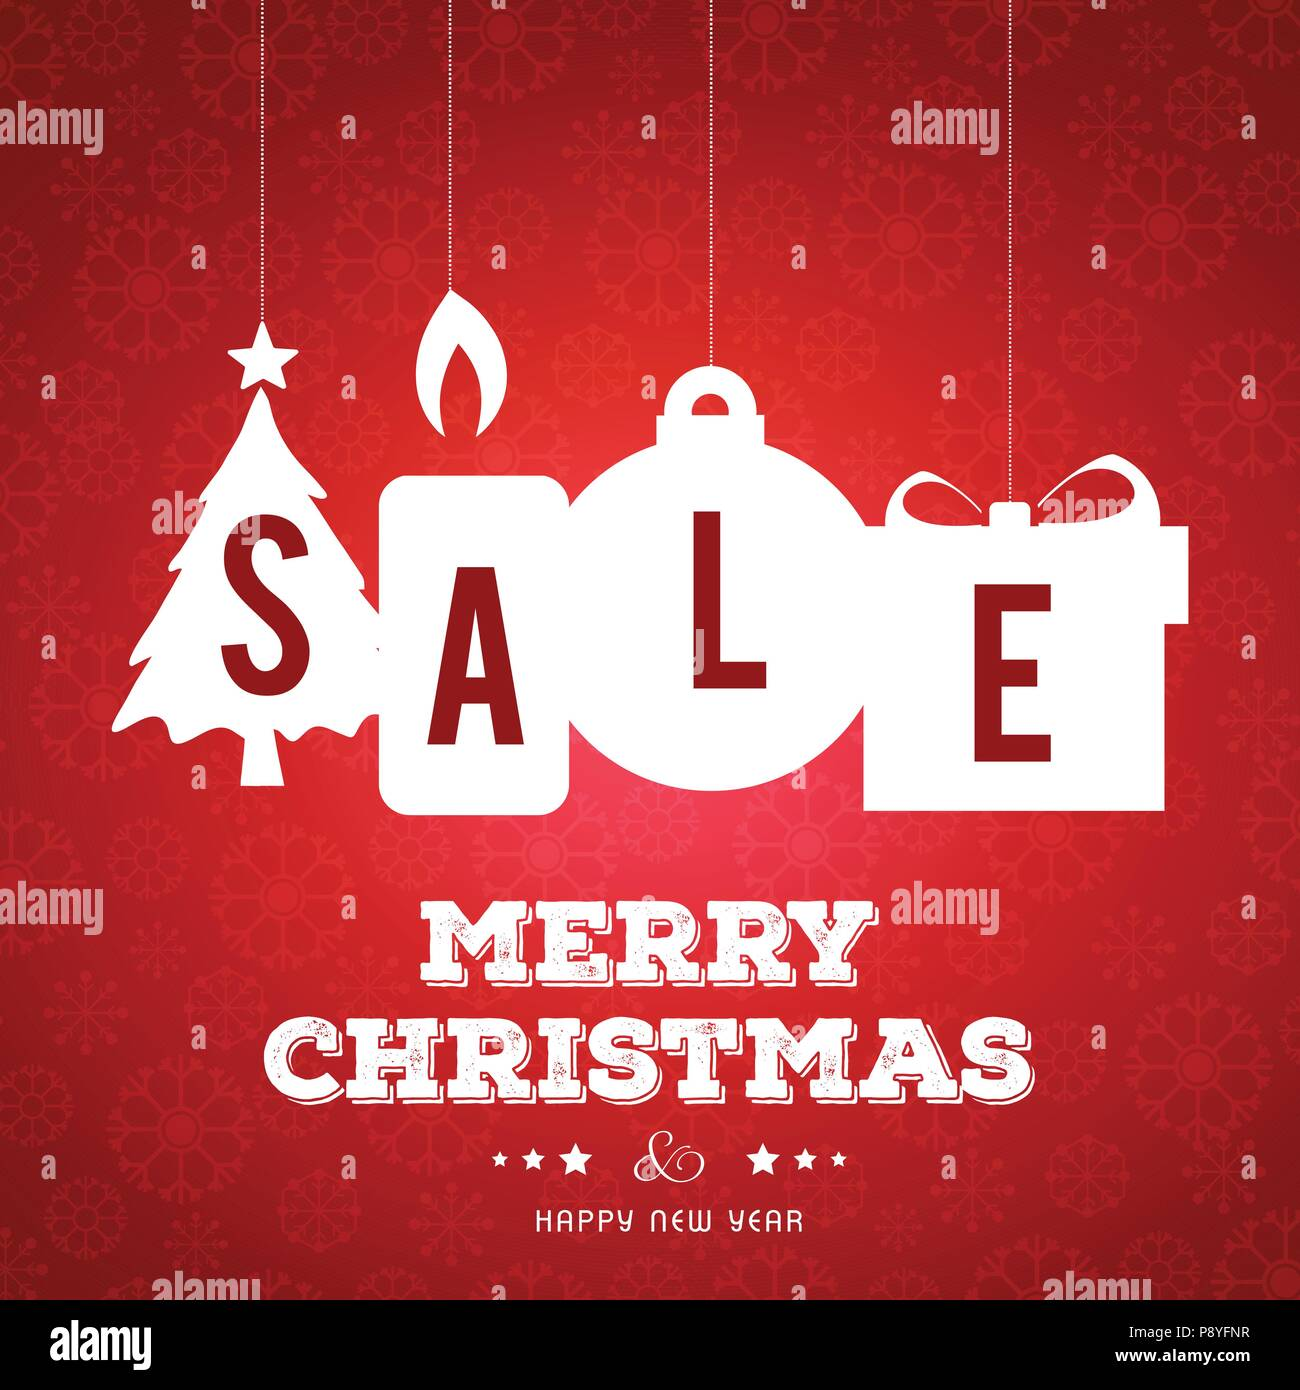 15a2cb301b Christmas sale banner with pattern. For web design and application  interface, also useful for infographics. Vector illustration.